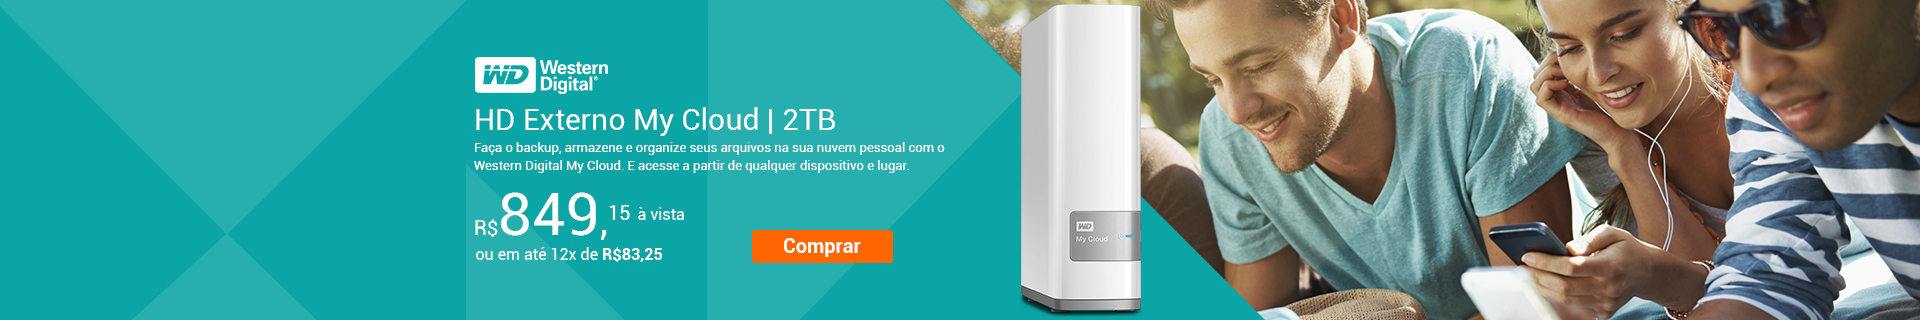 Home - Western Digital